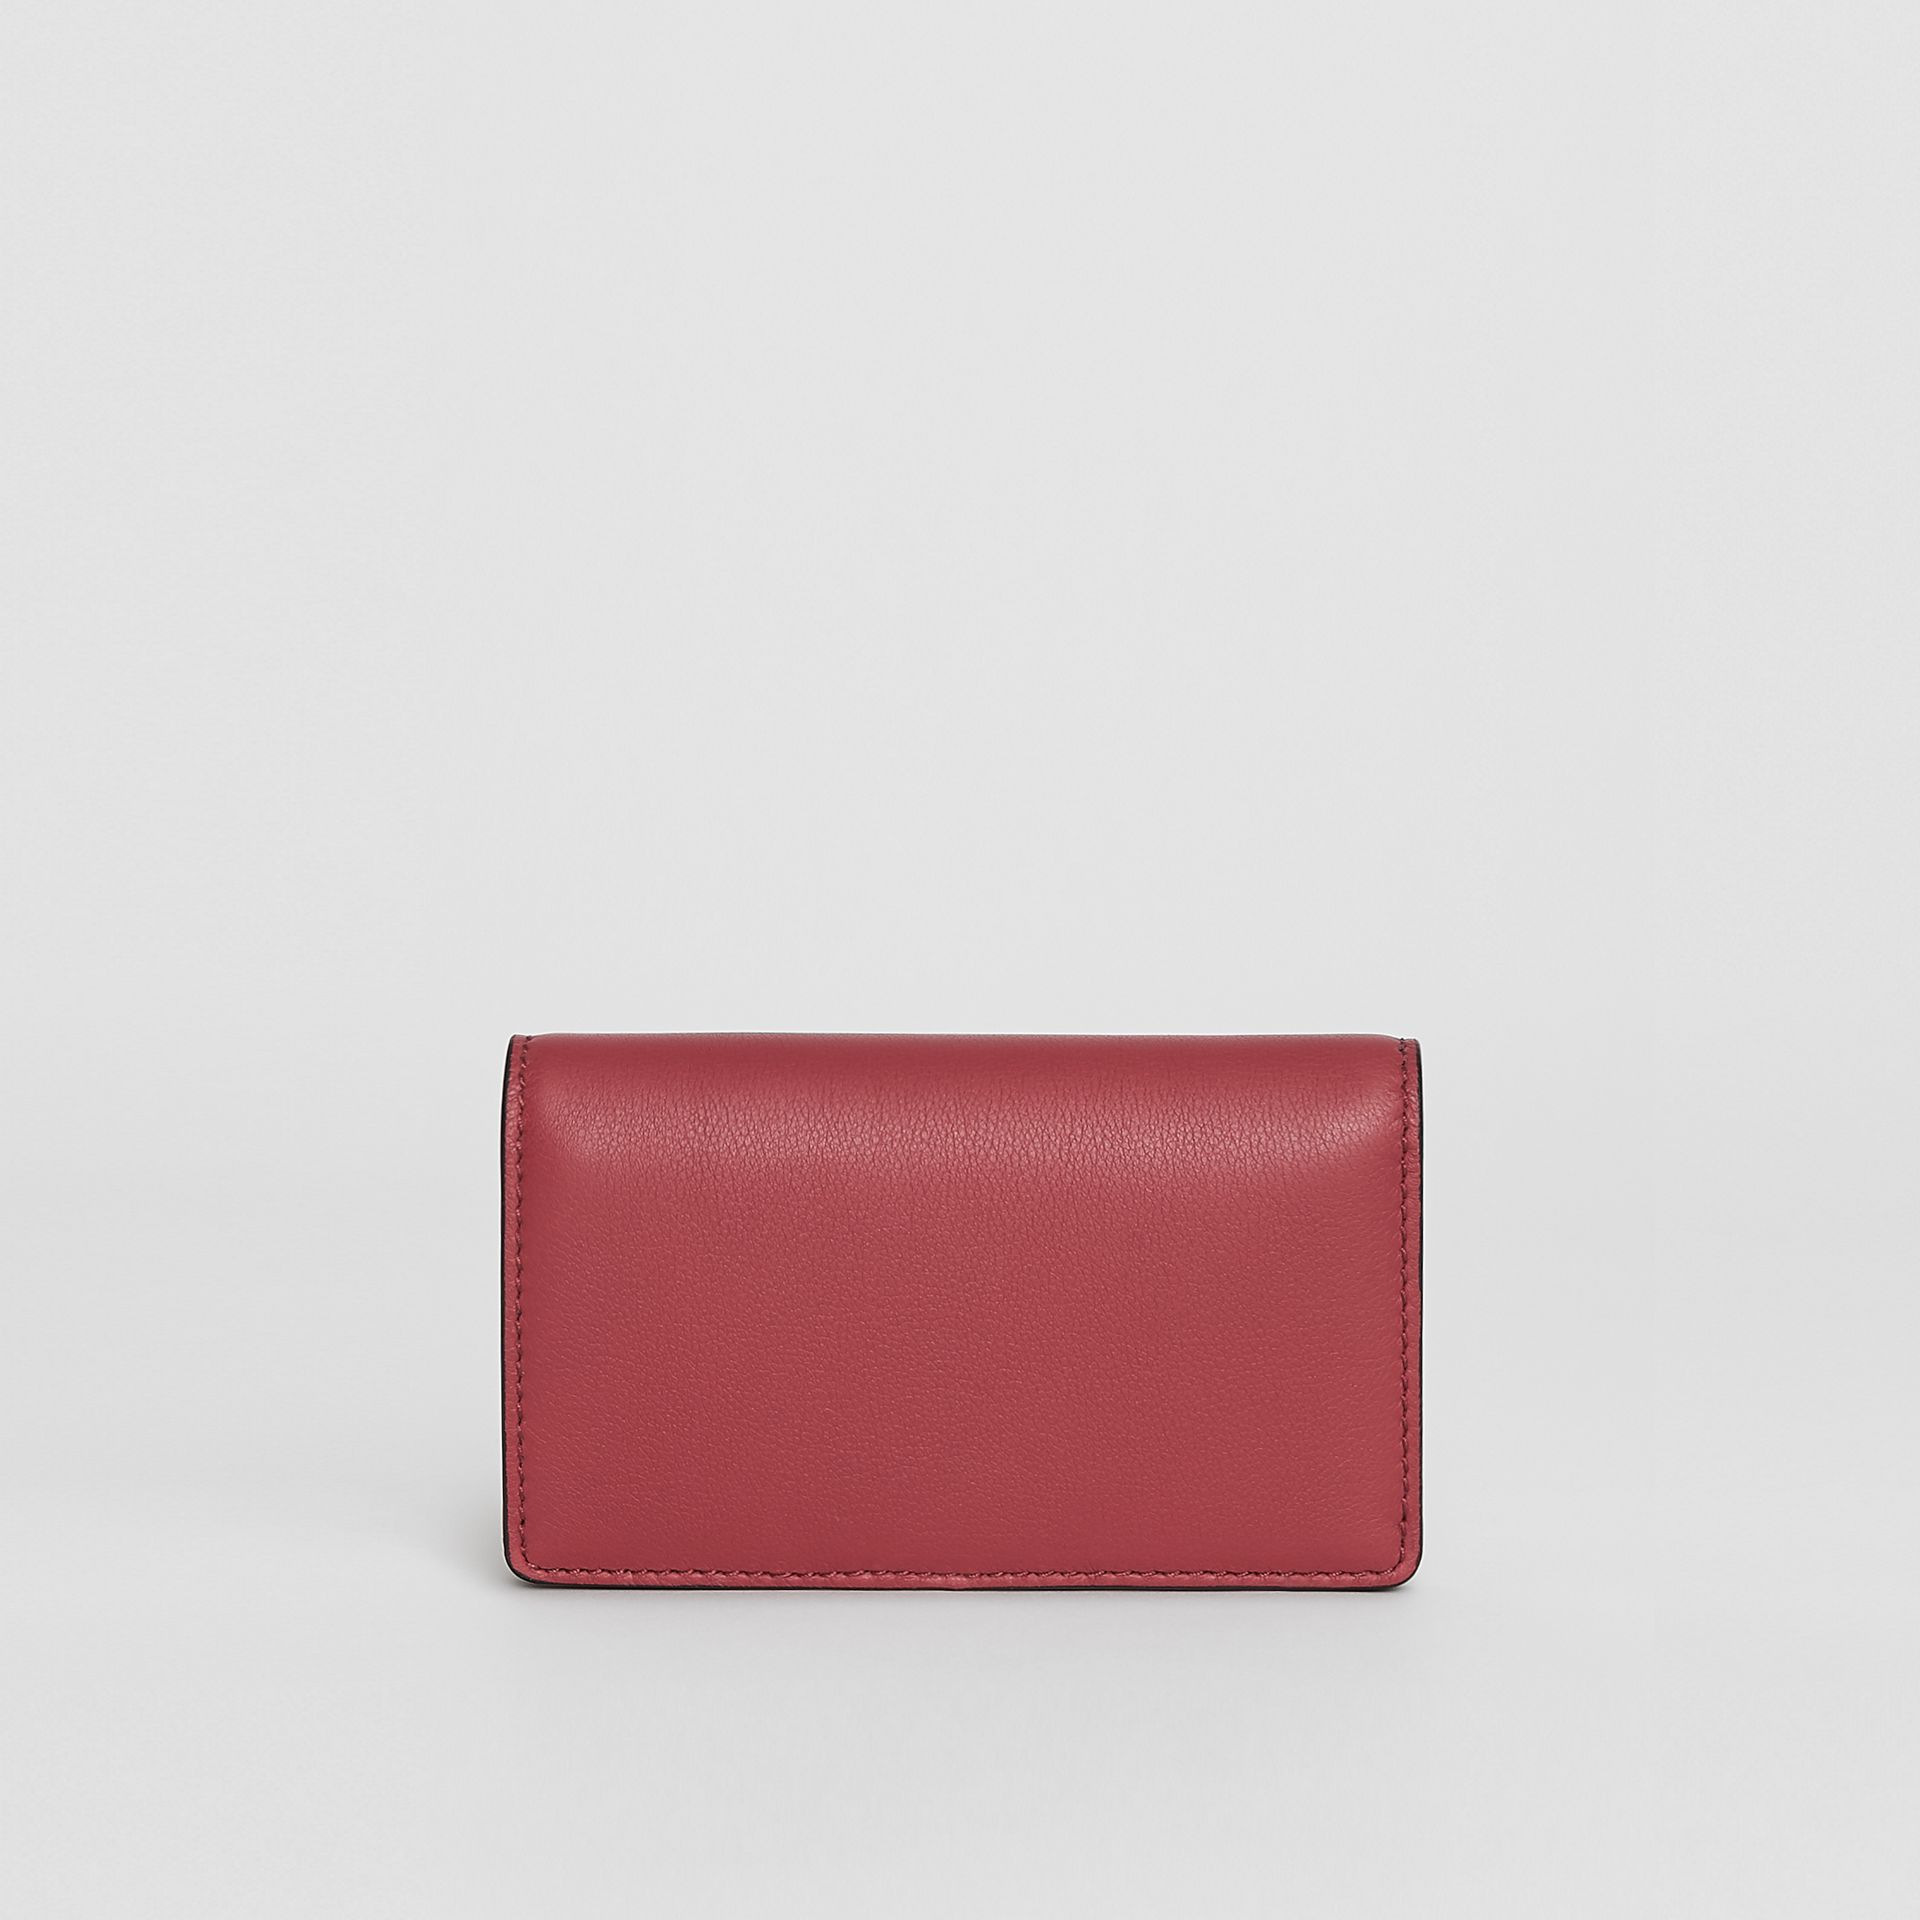 Small Embossed Crest Two-tone Leather Wallet in Crimson - Women | Burberry Hong Kong - gallery image 2